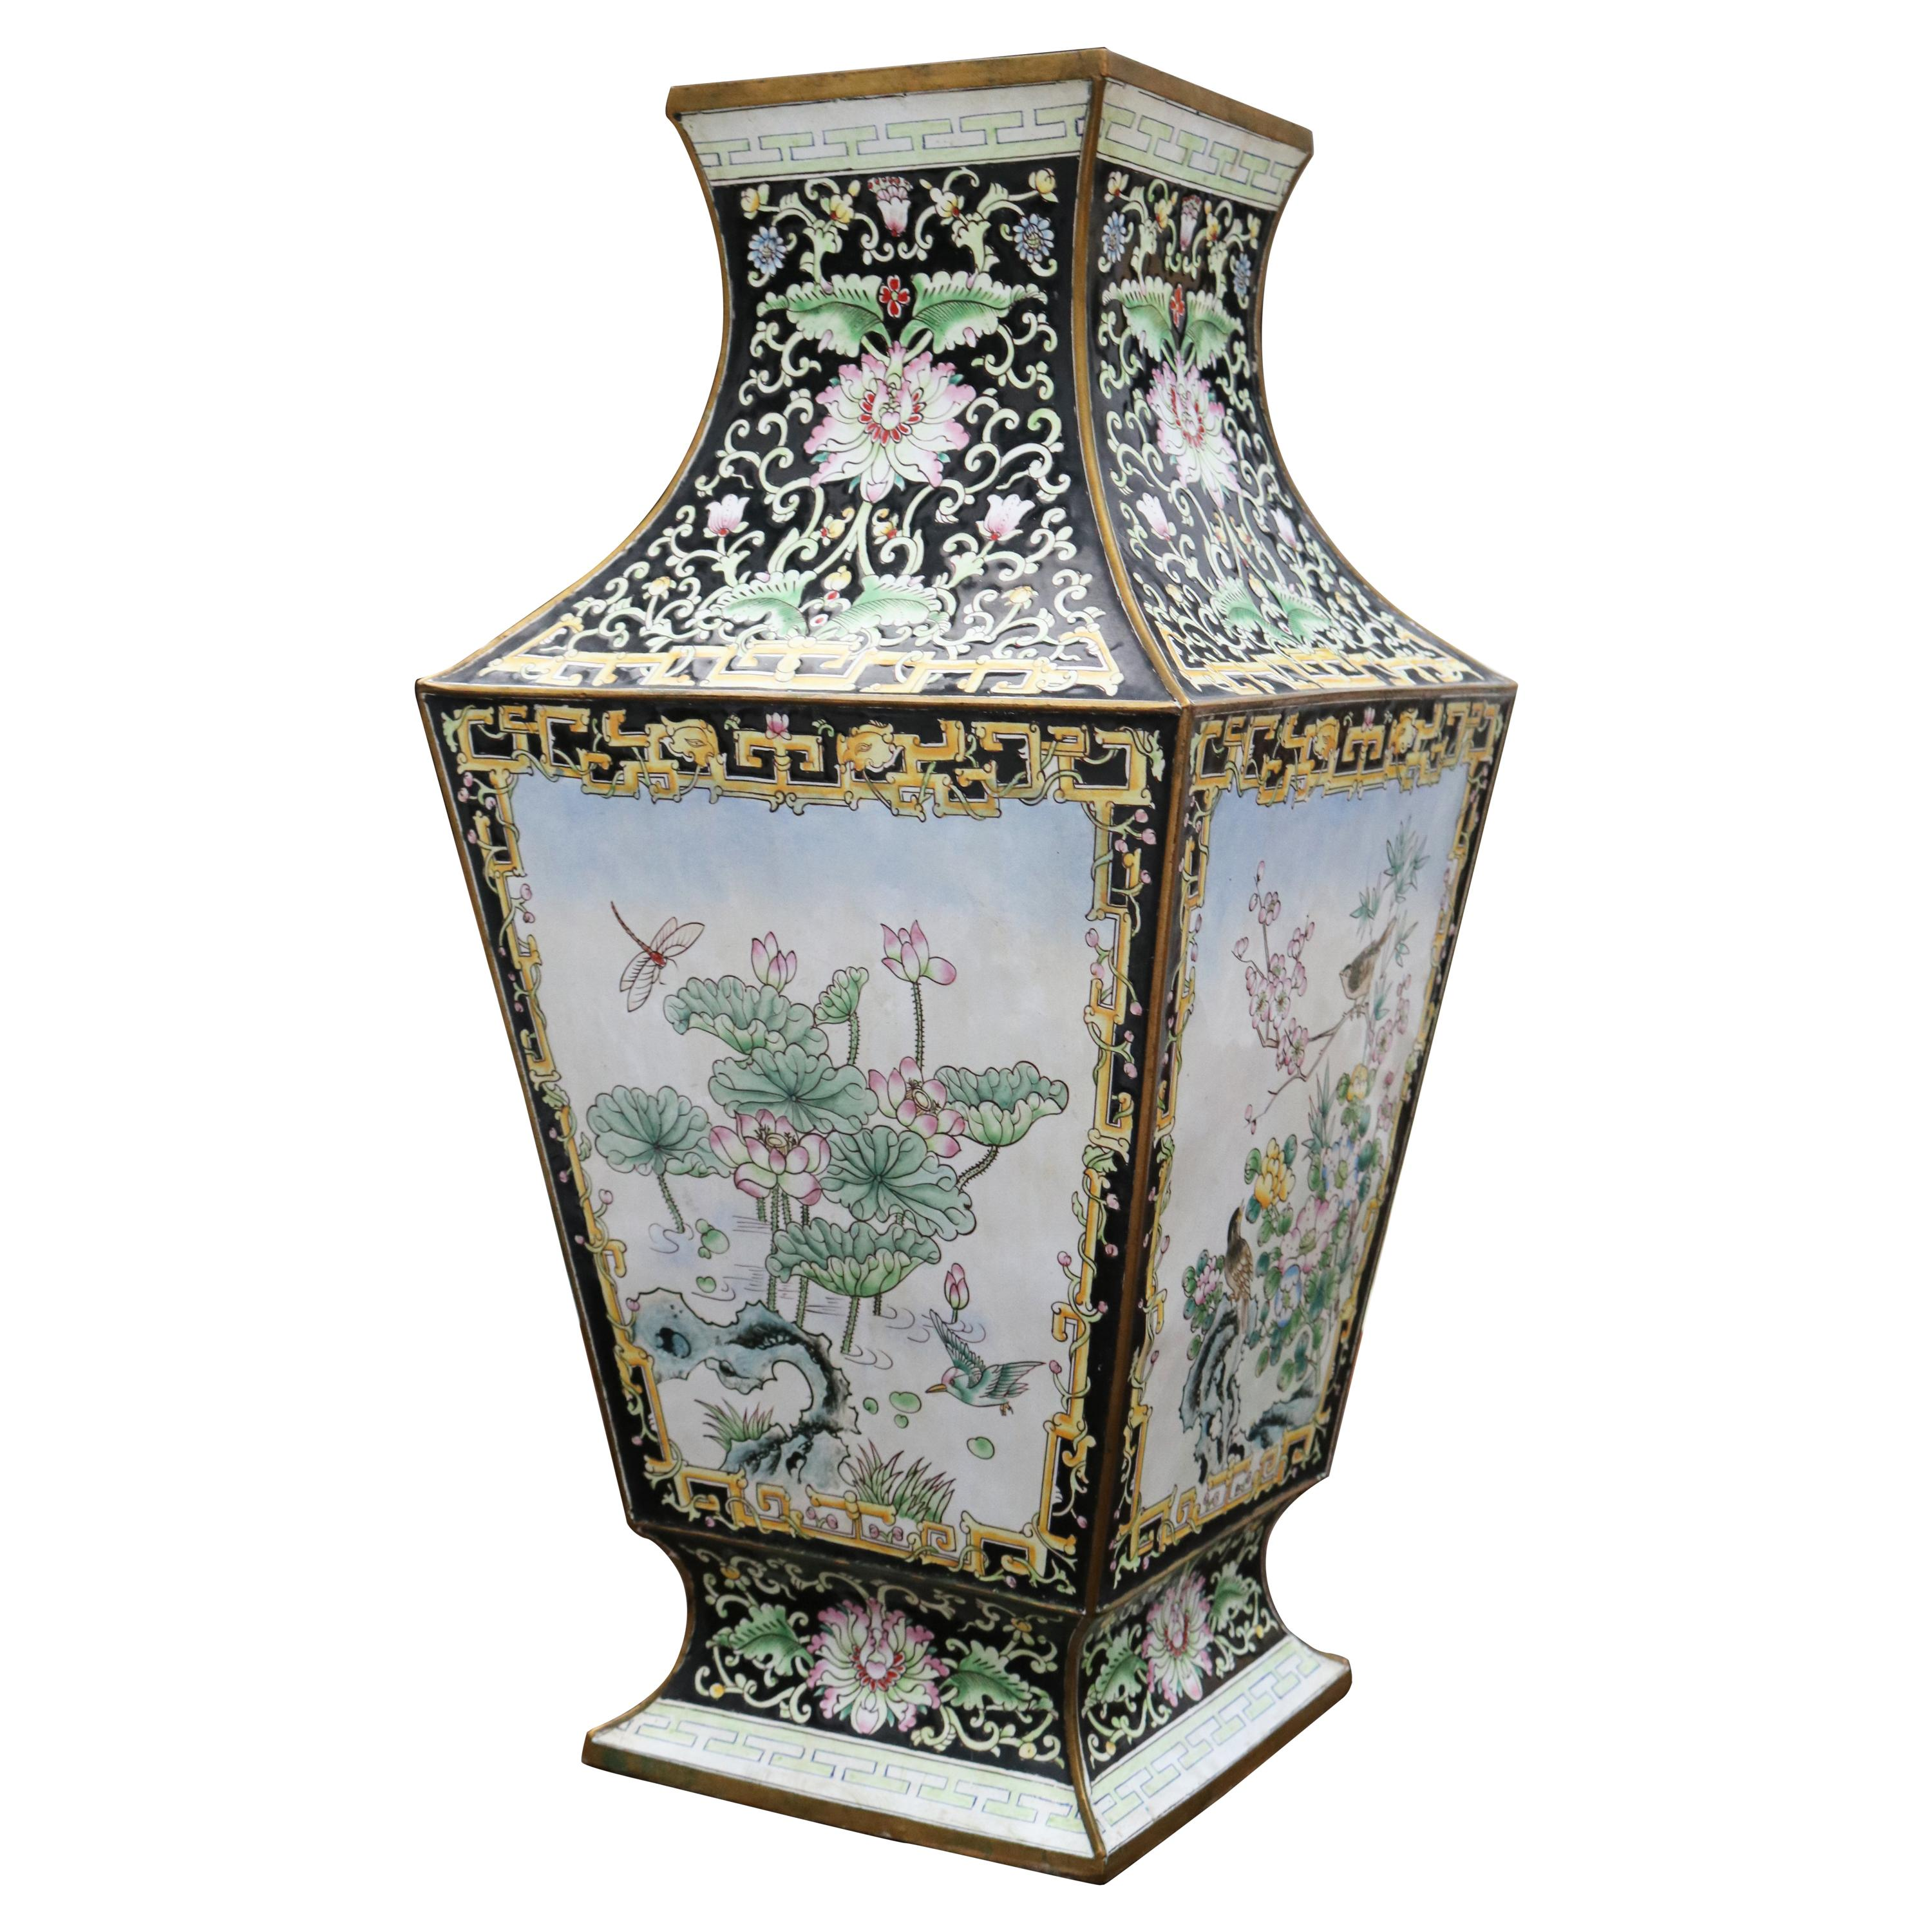 1970s Chinese Cloisonné Hand Painted Vase with Flower Motifs